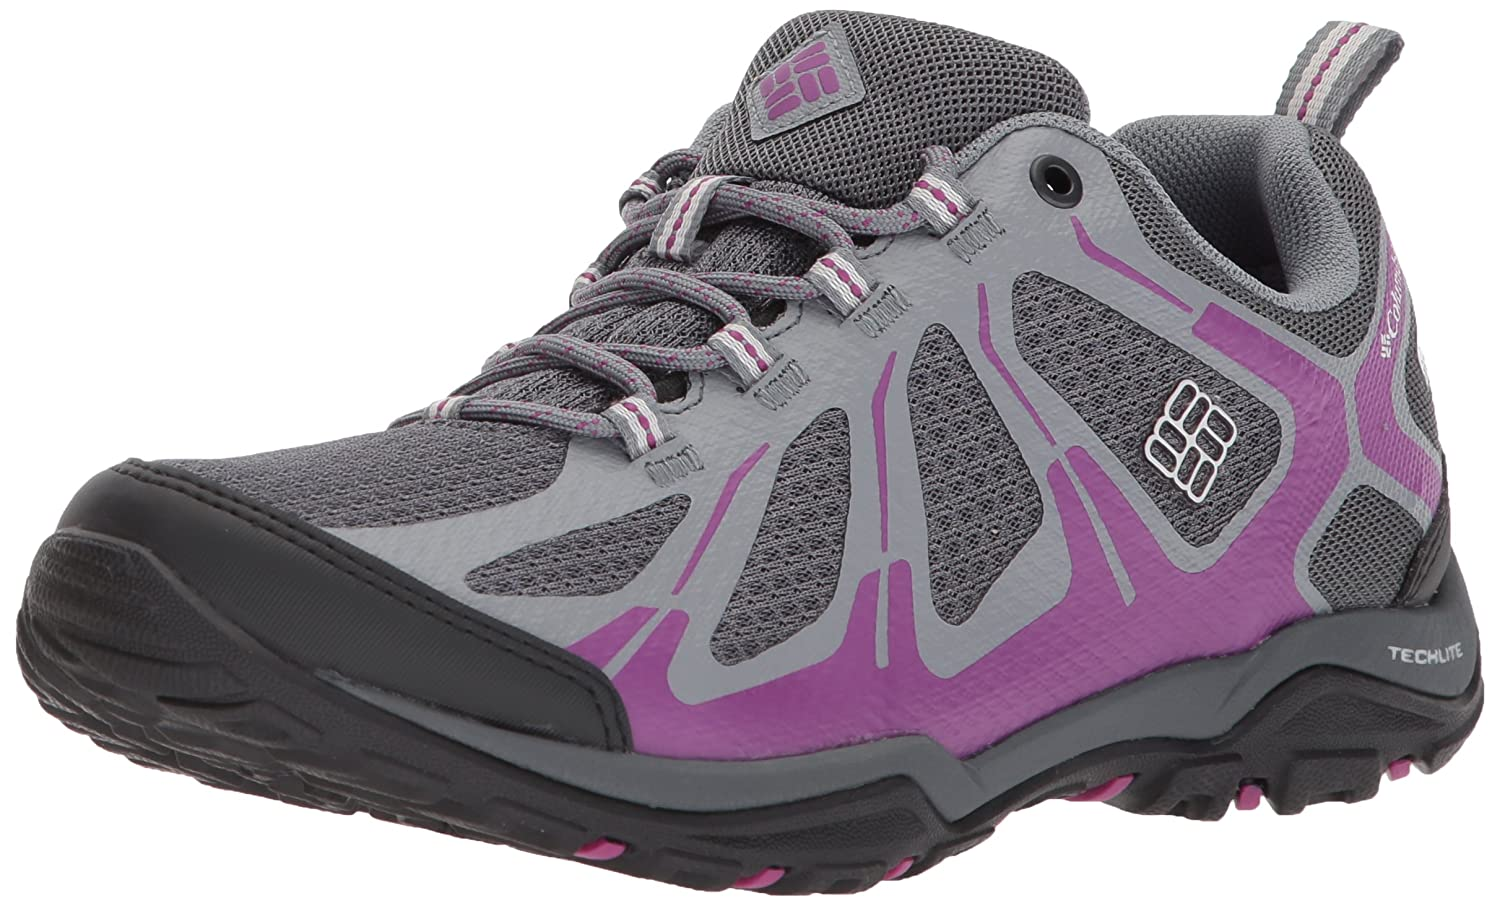 Trekking Amp Hiking Shoes Online Shopping For Clothing